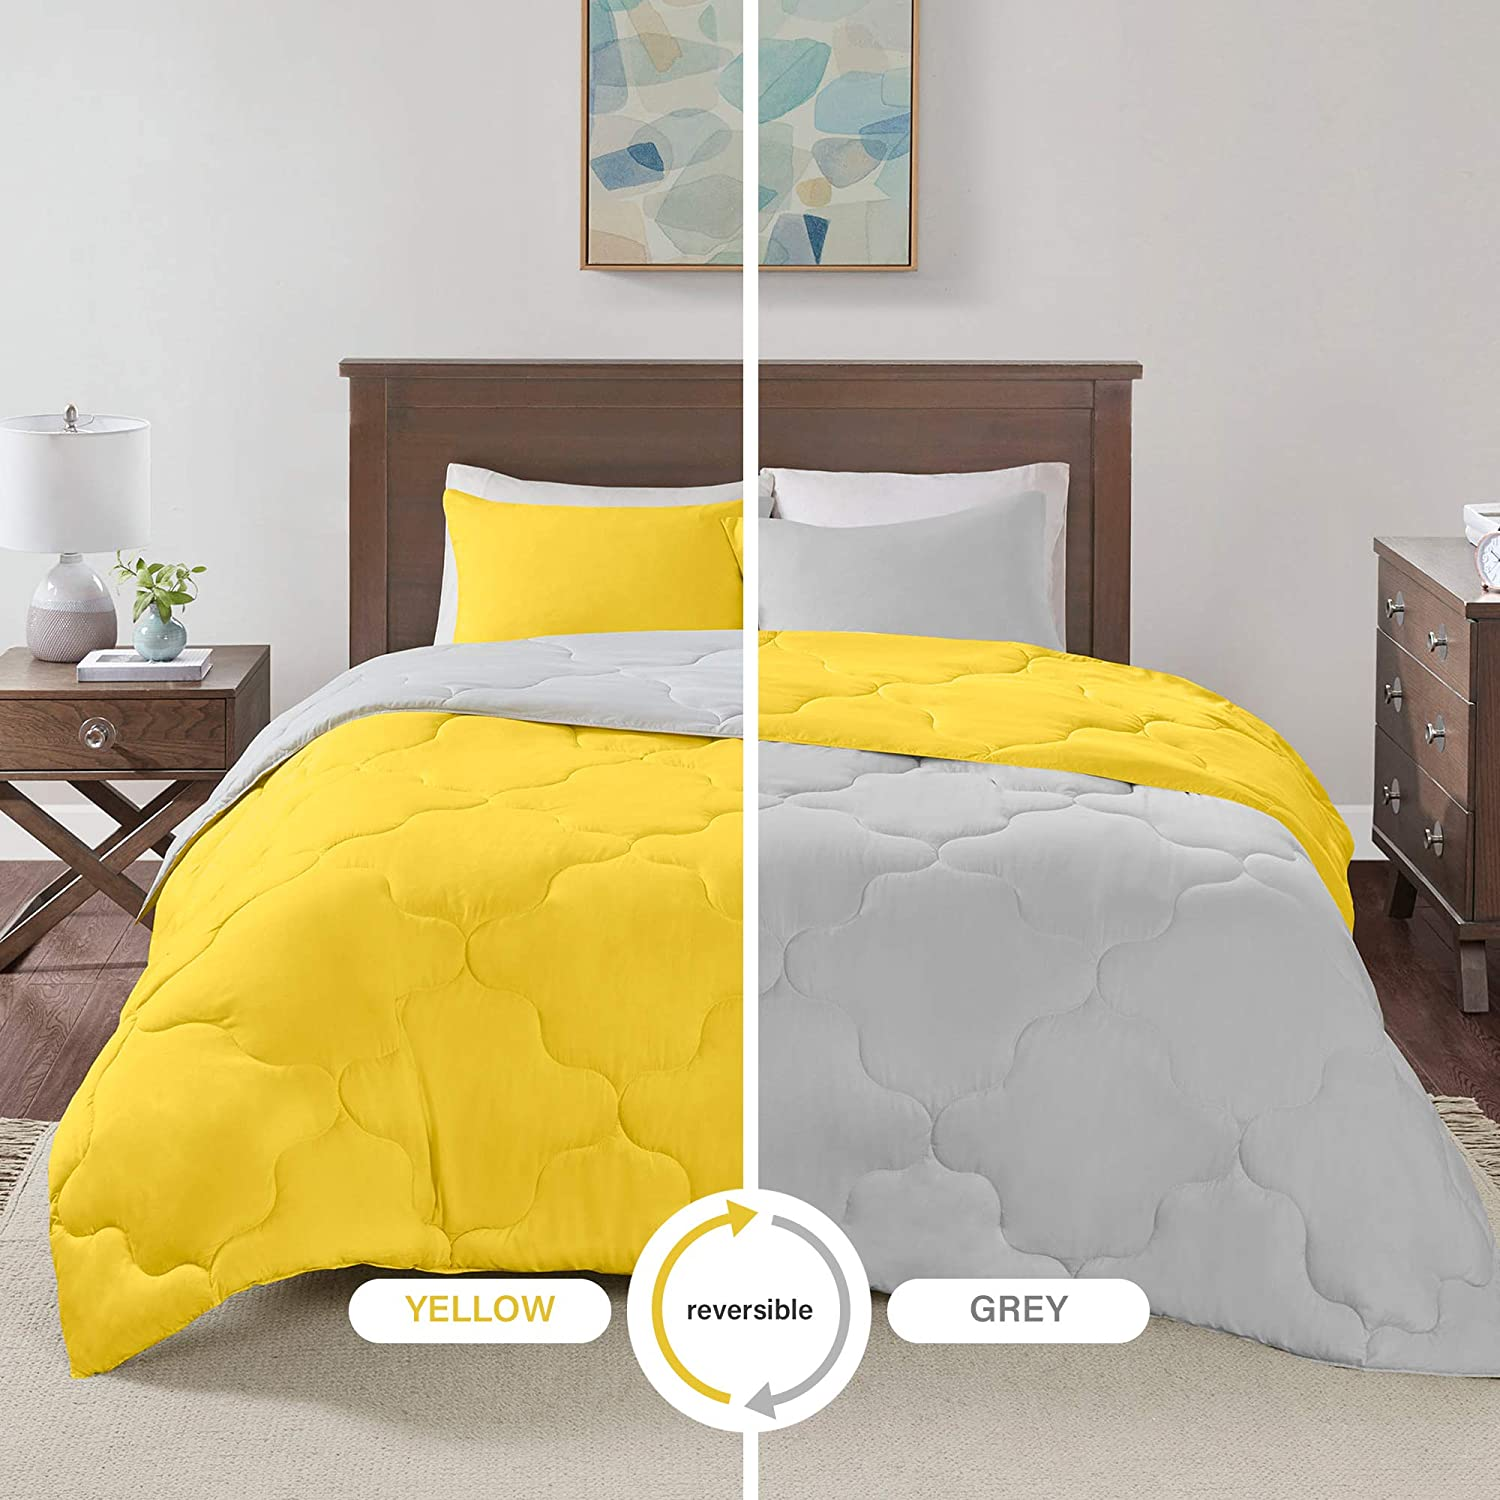 Comfort Spaces Vixie 3 Piece Comforter Set All Season Reversible Goose Down Alternative Stitched Geometrical Pattern Bedding, Full/Queen, Yellow/Grey